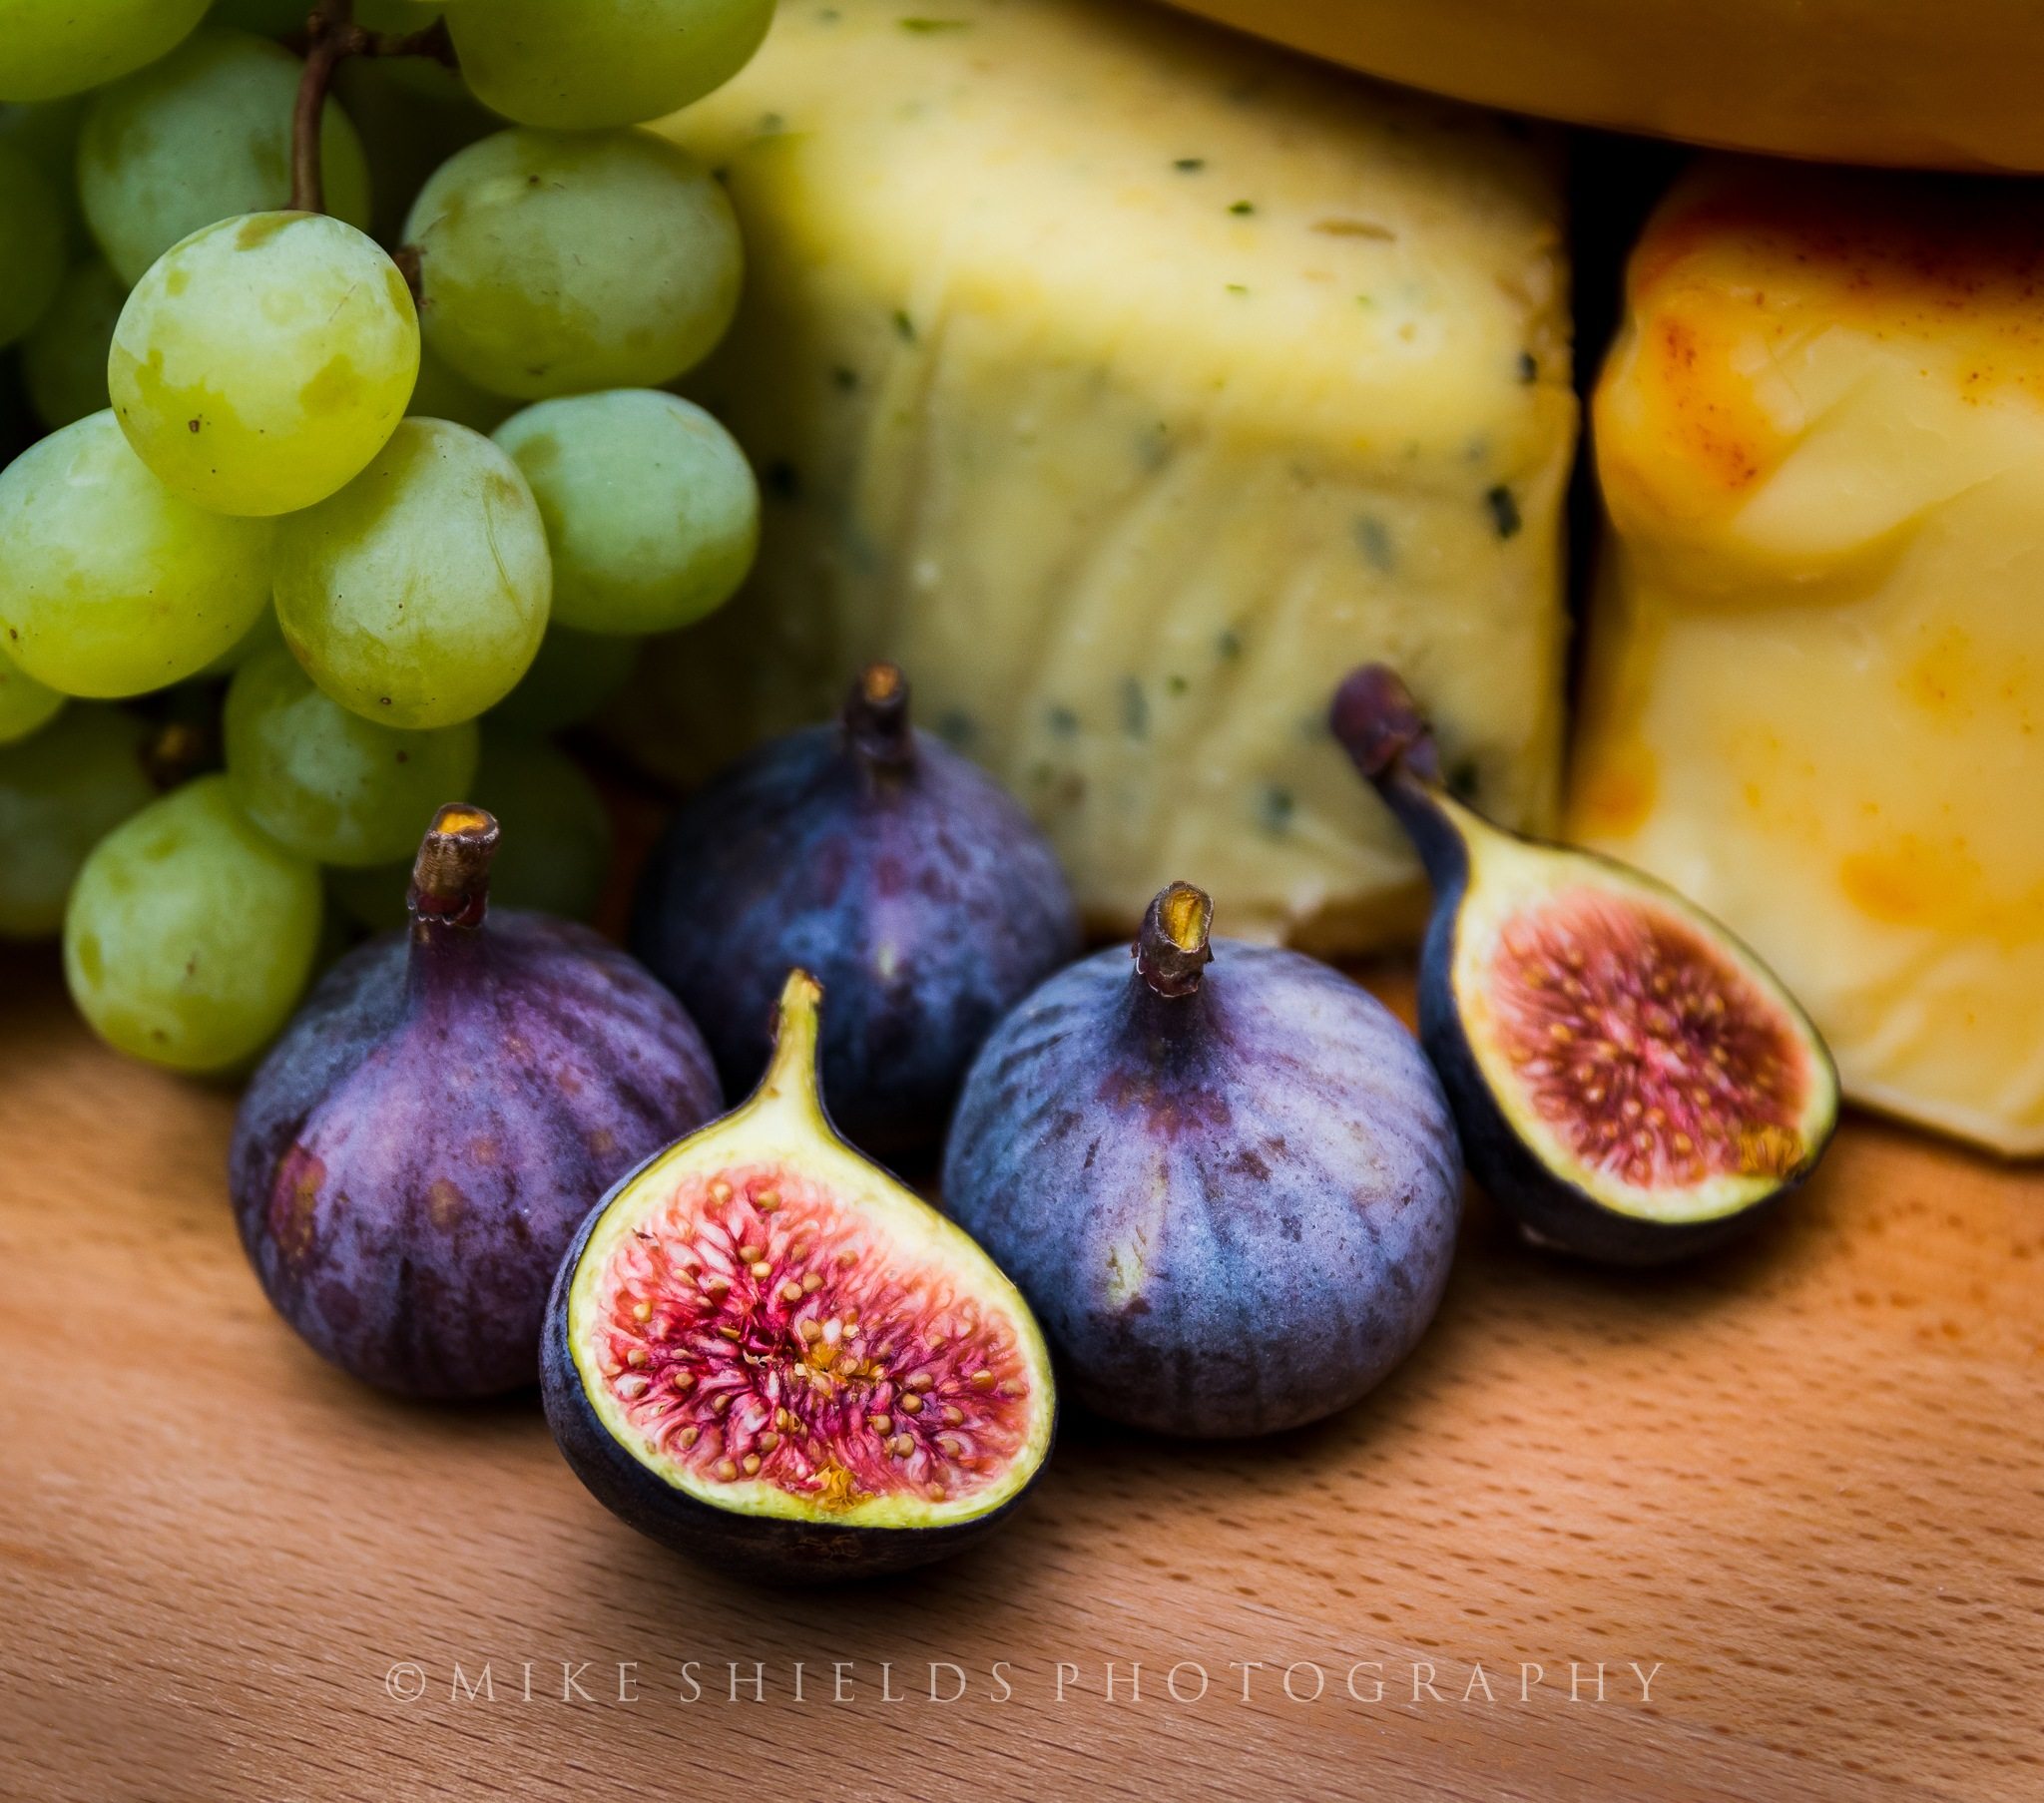 Couldn't give a Fig by MikeShieldsPhotography